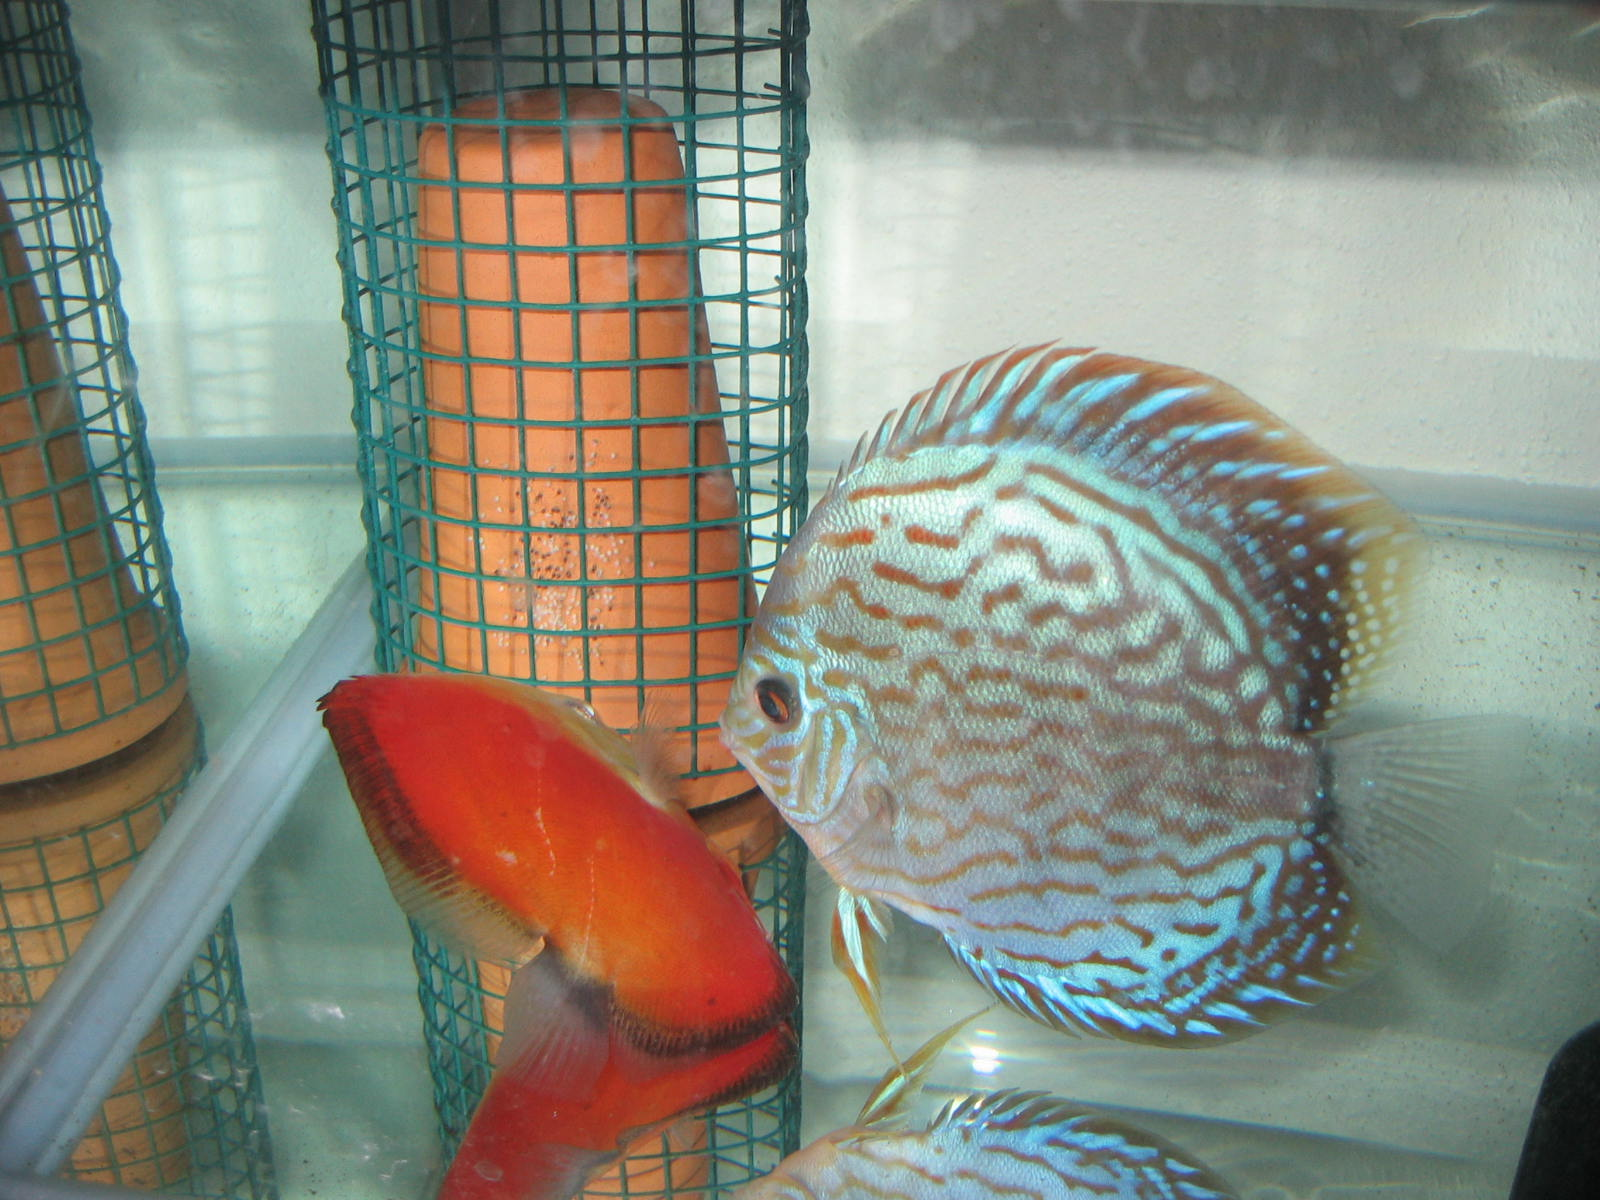 The secerts of breeding discus wow discus fish discuss me for Discus fish food